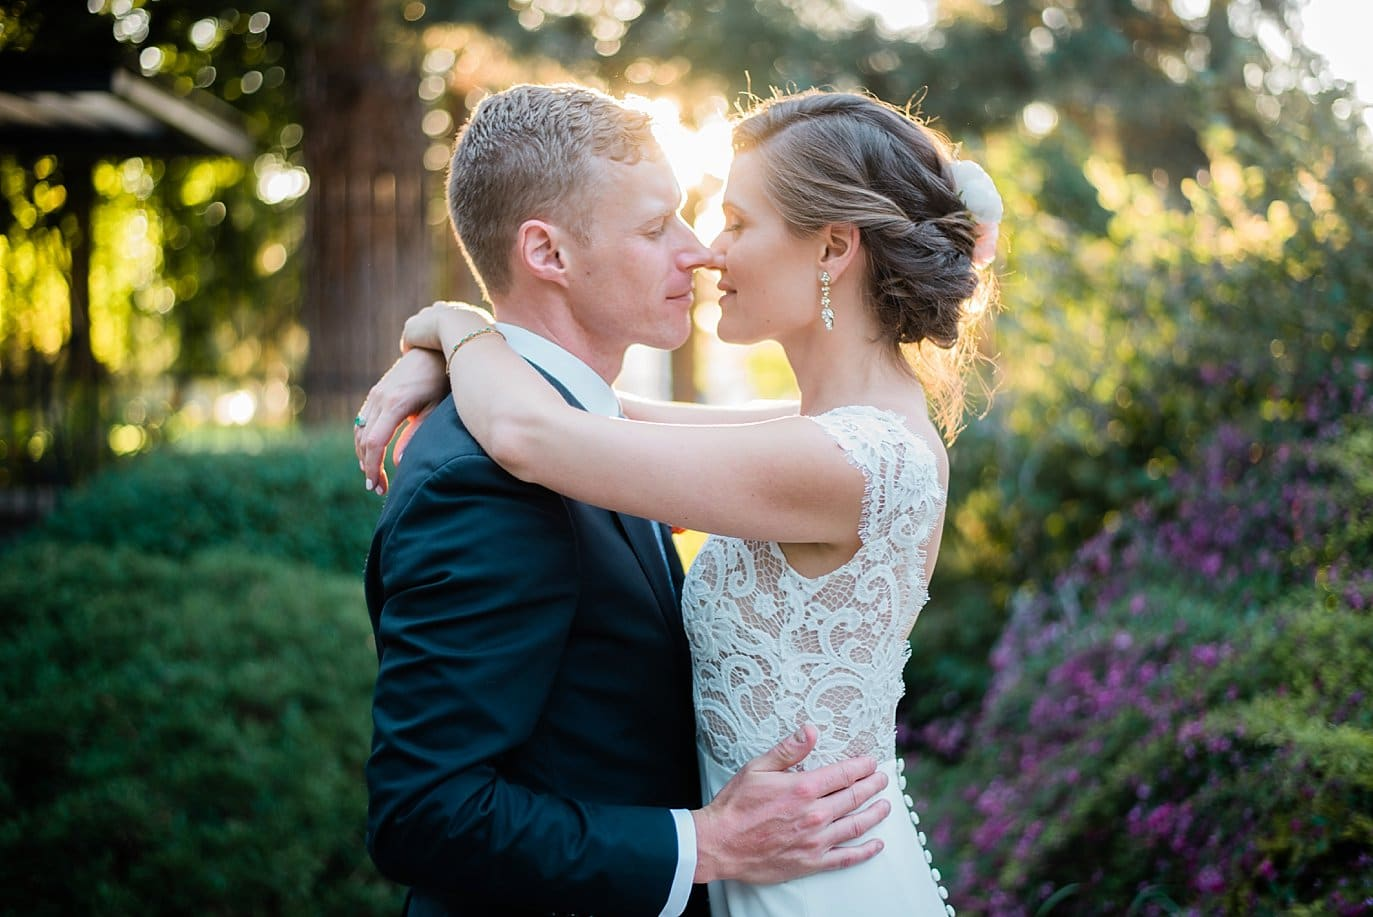 bride and groom intimate sunset portrait in Asian gardens at Denver Botanic Gardens wedding by Boulder Wedding Photographer Jennie Crate